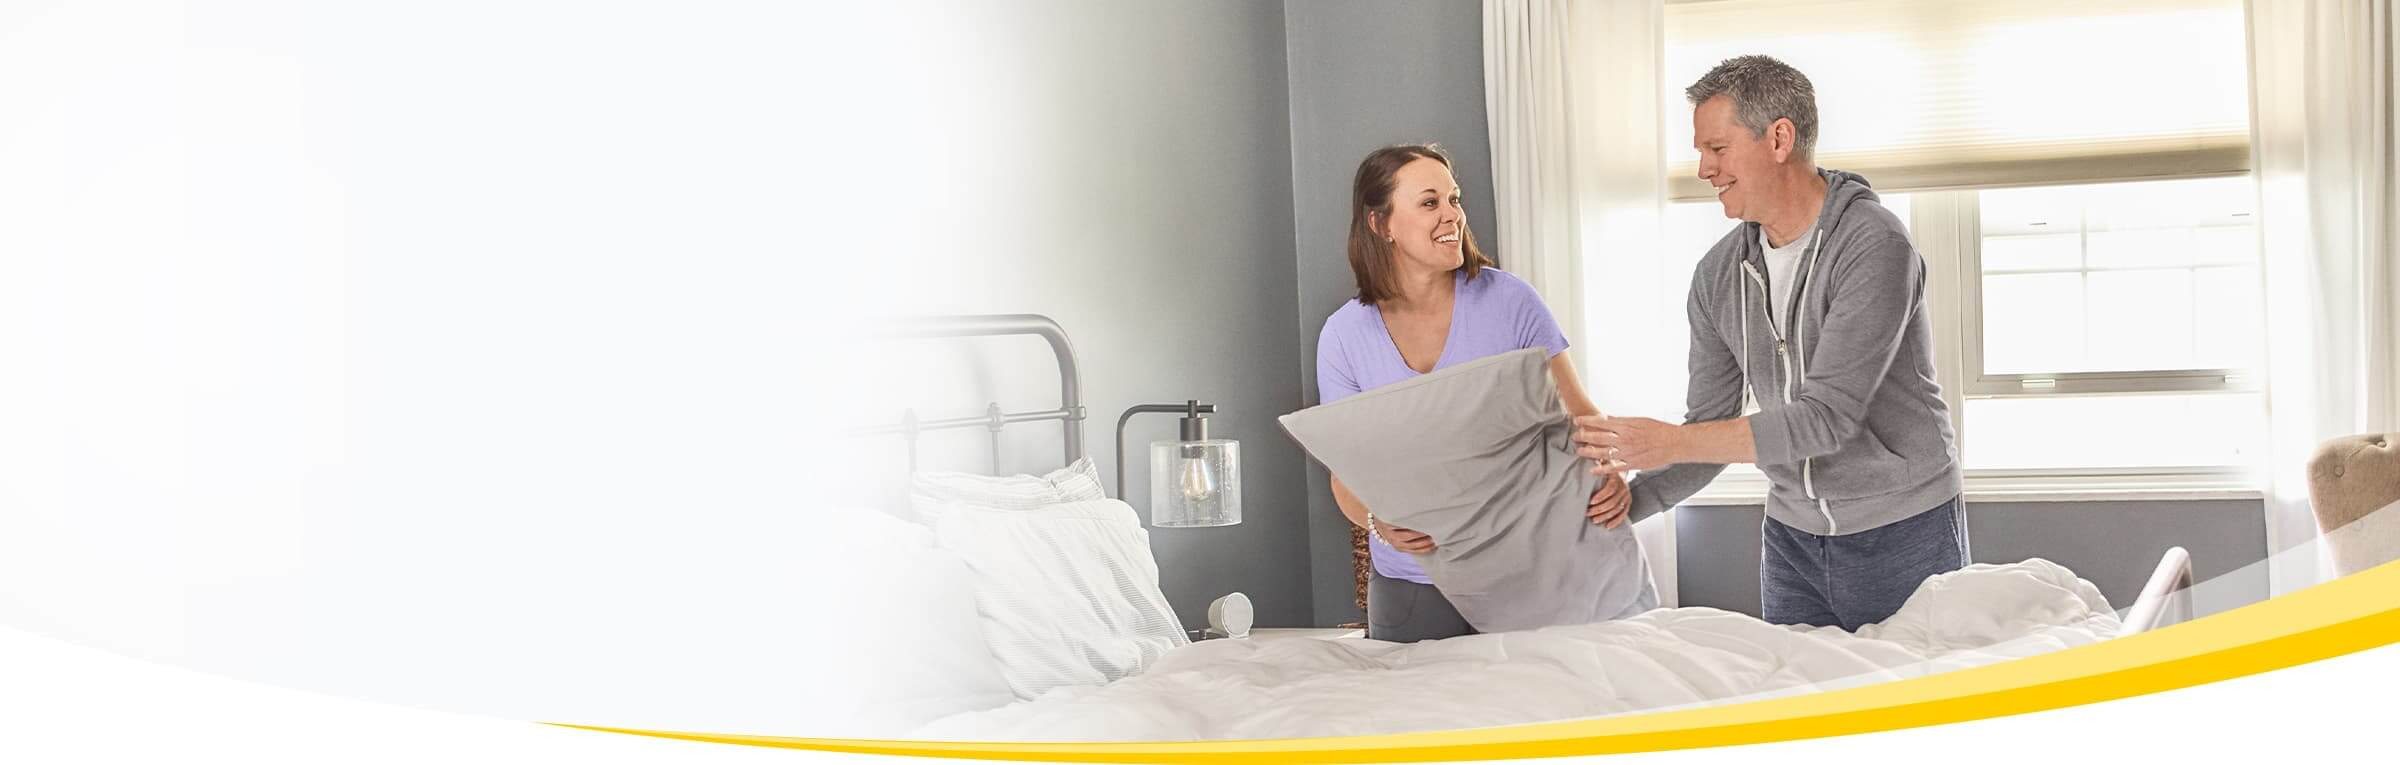 Give patients with insomnia the opportunity to start their day with a good night's sleep